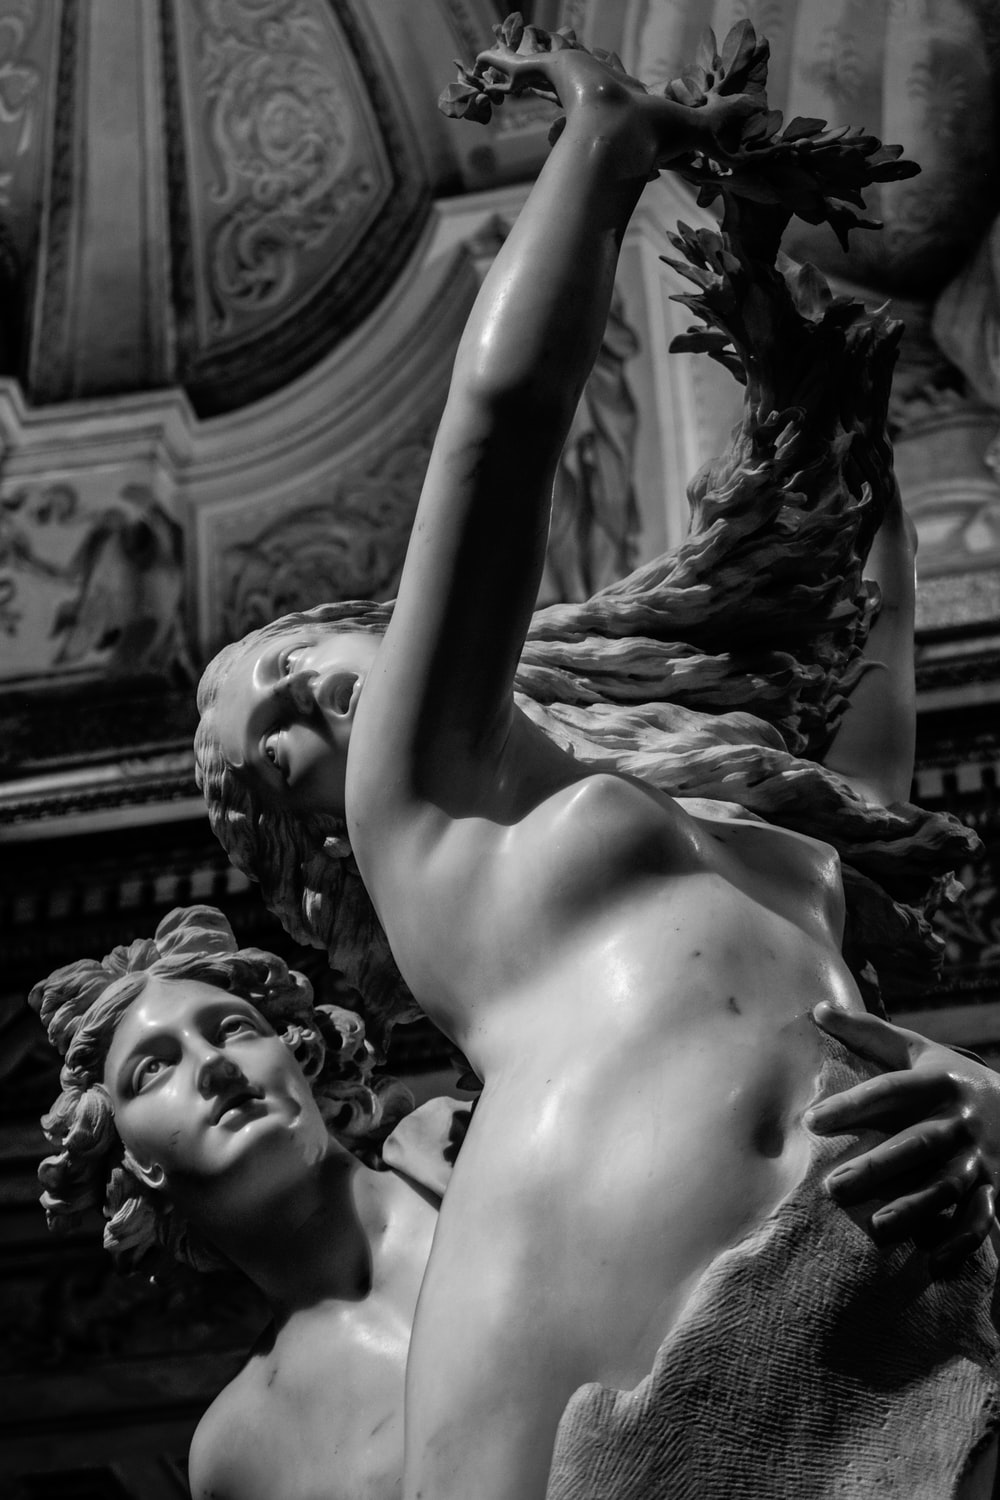 nude woman and man statue